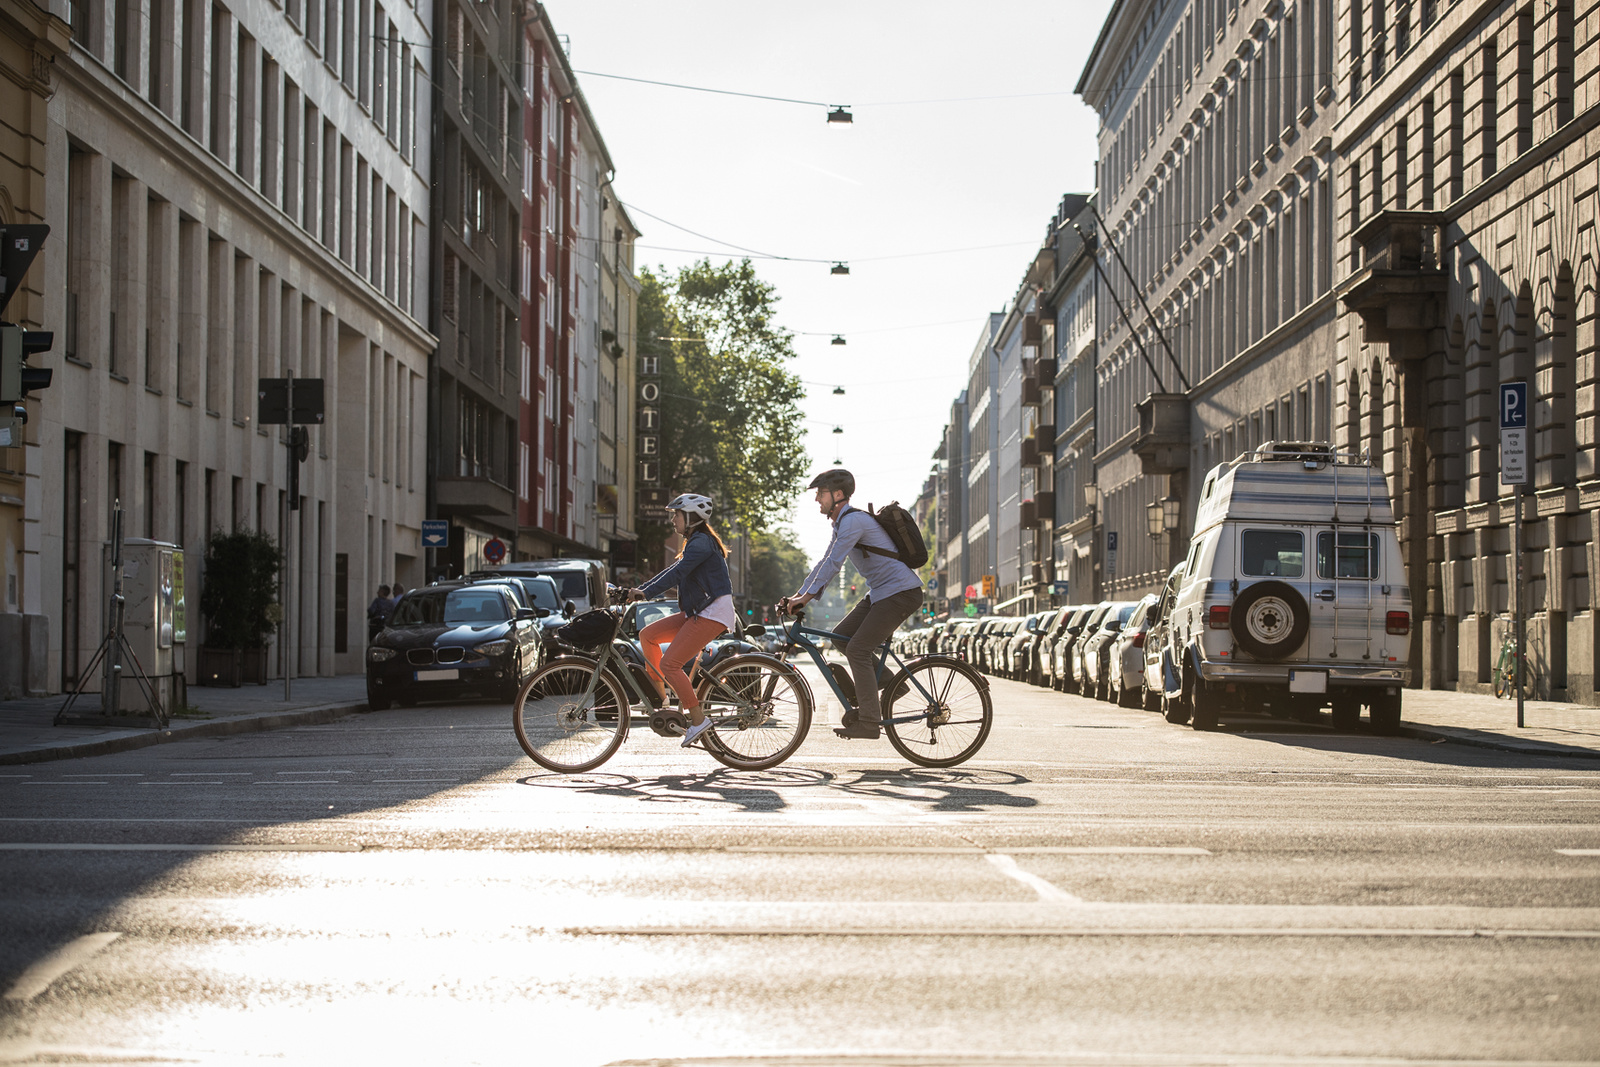 A reason to celebrate: together with its partners and customers, Bosch established the eBike as the fastest and most effective means of transport in urban areas.